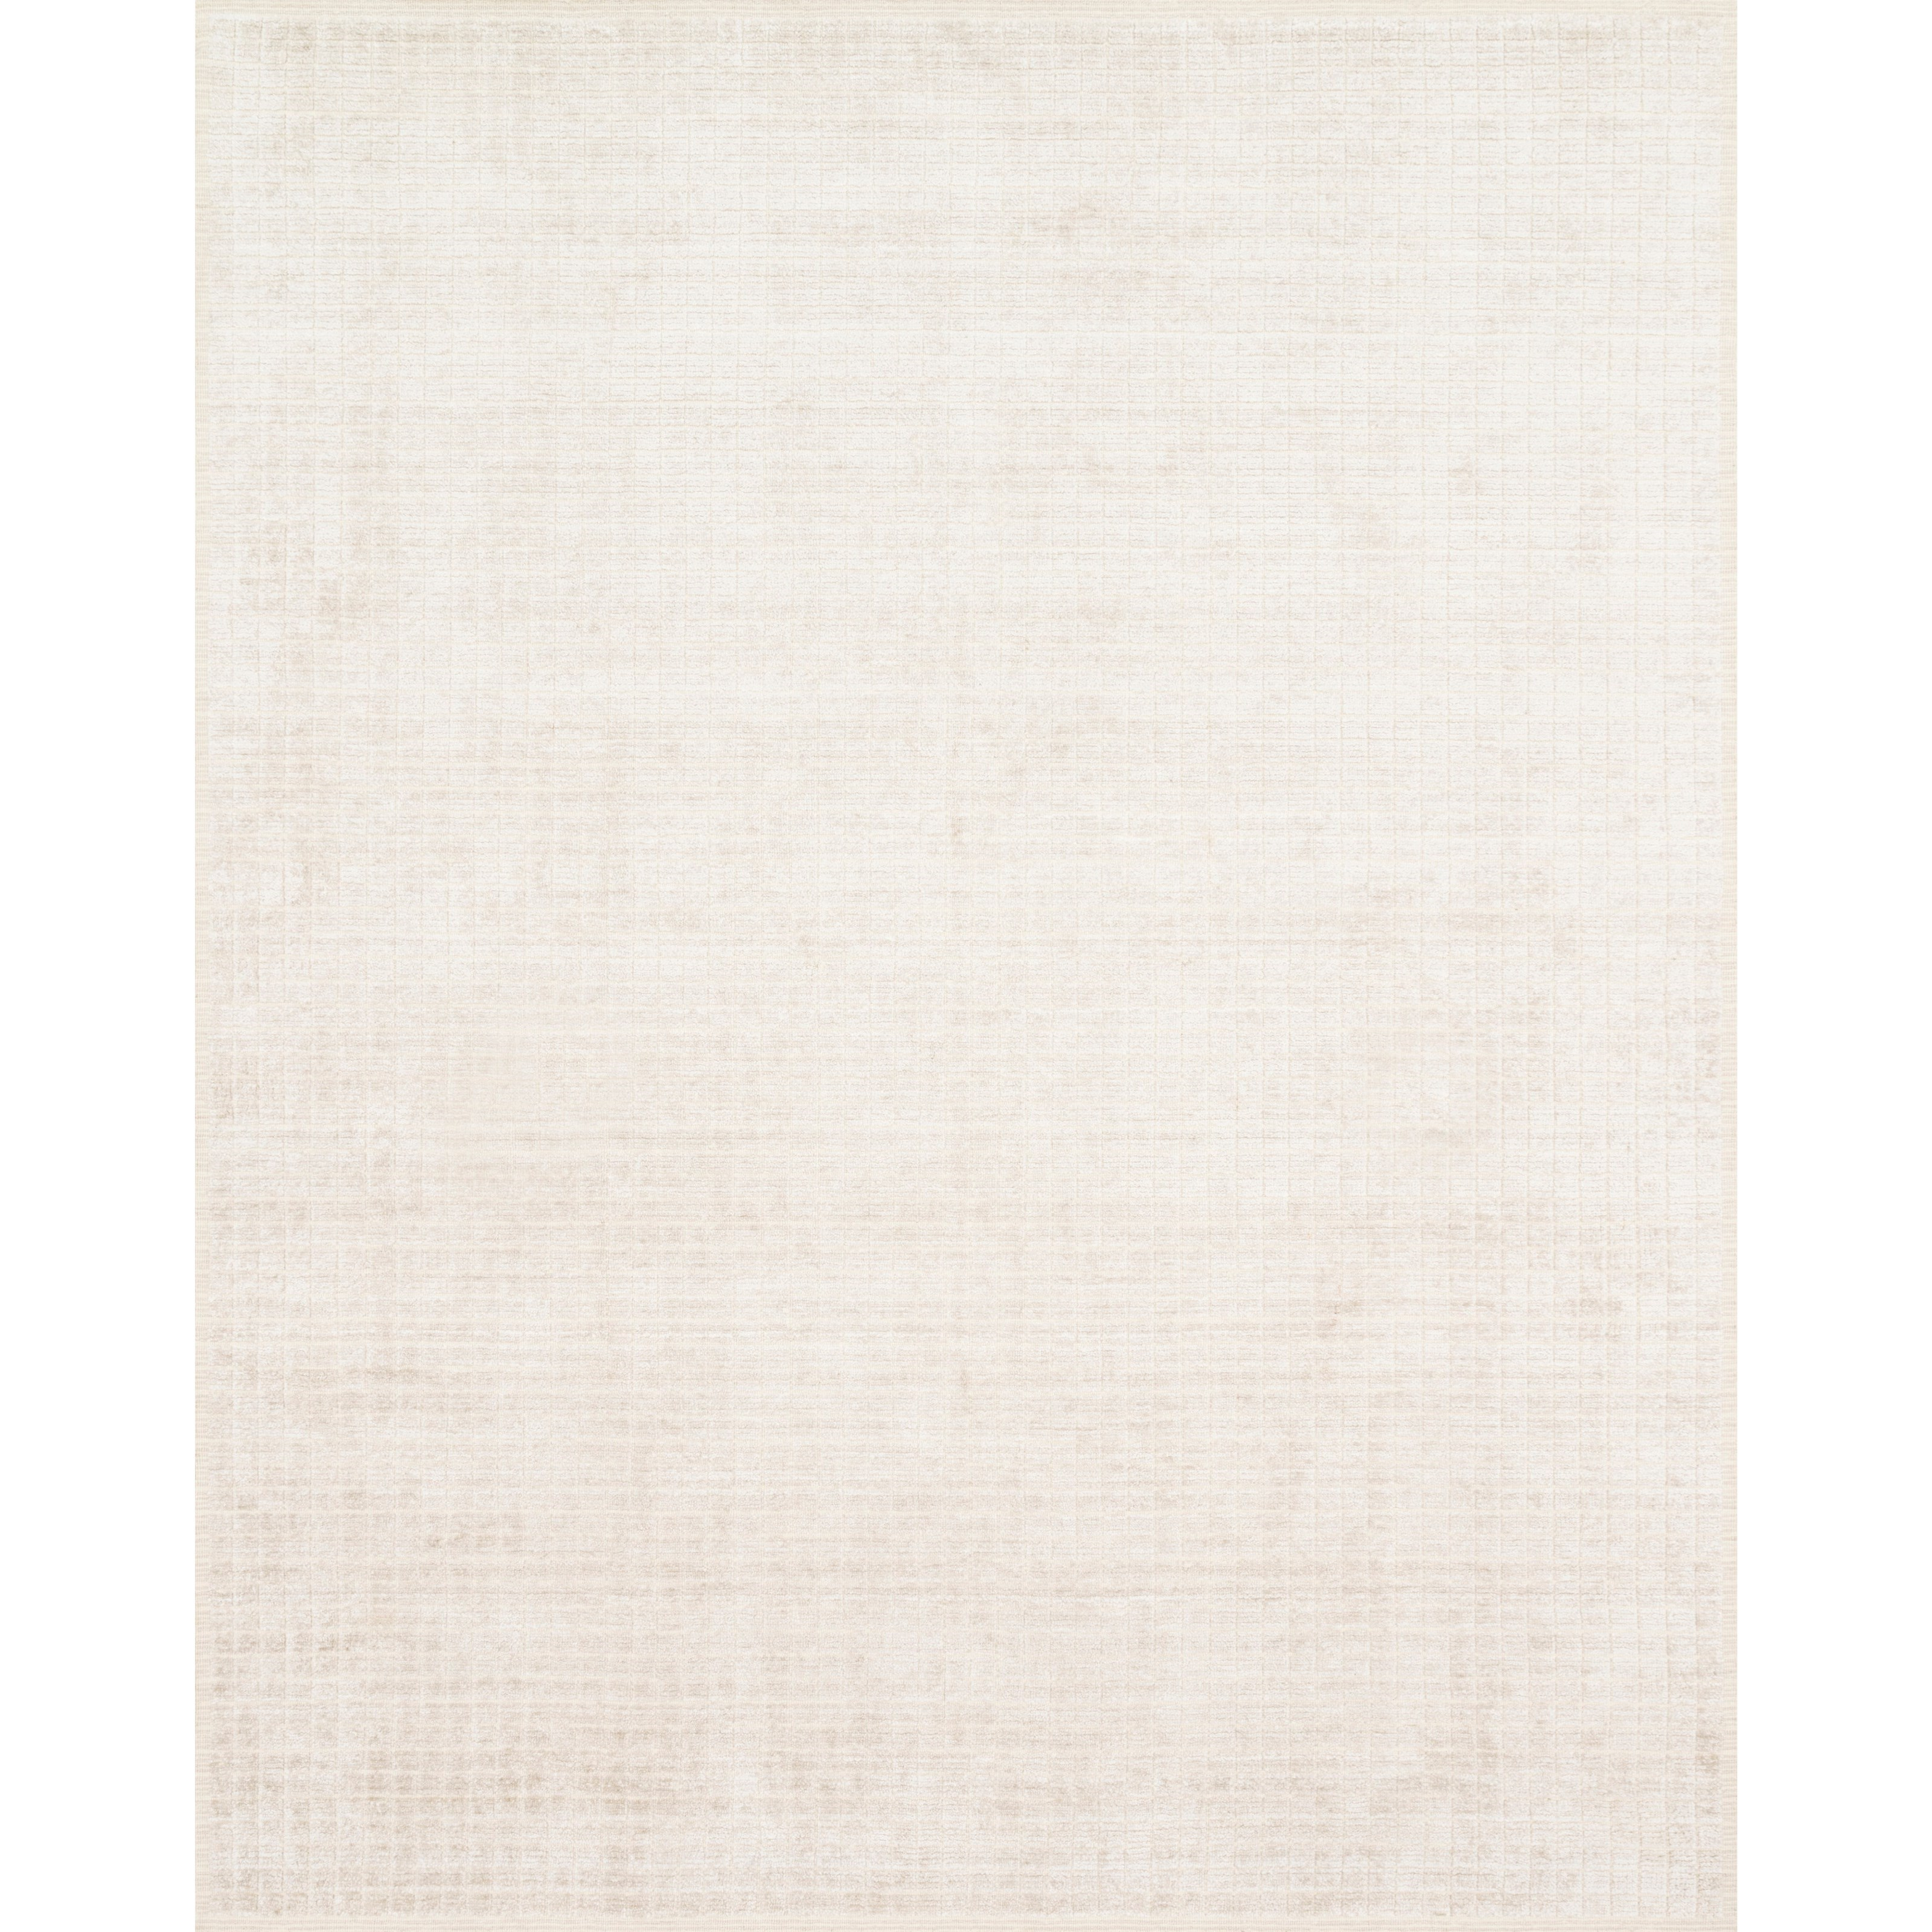 """Beverly 5'6"""" x 8'6"""" Natural Rug by Loloi Rugs at Virginia Furniture Market"""